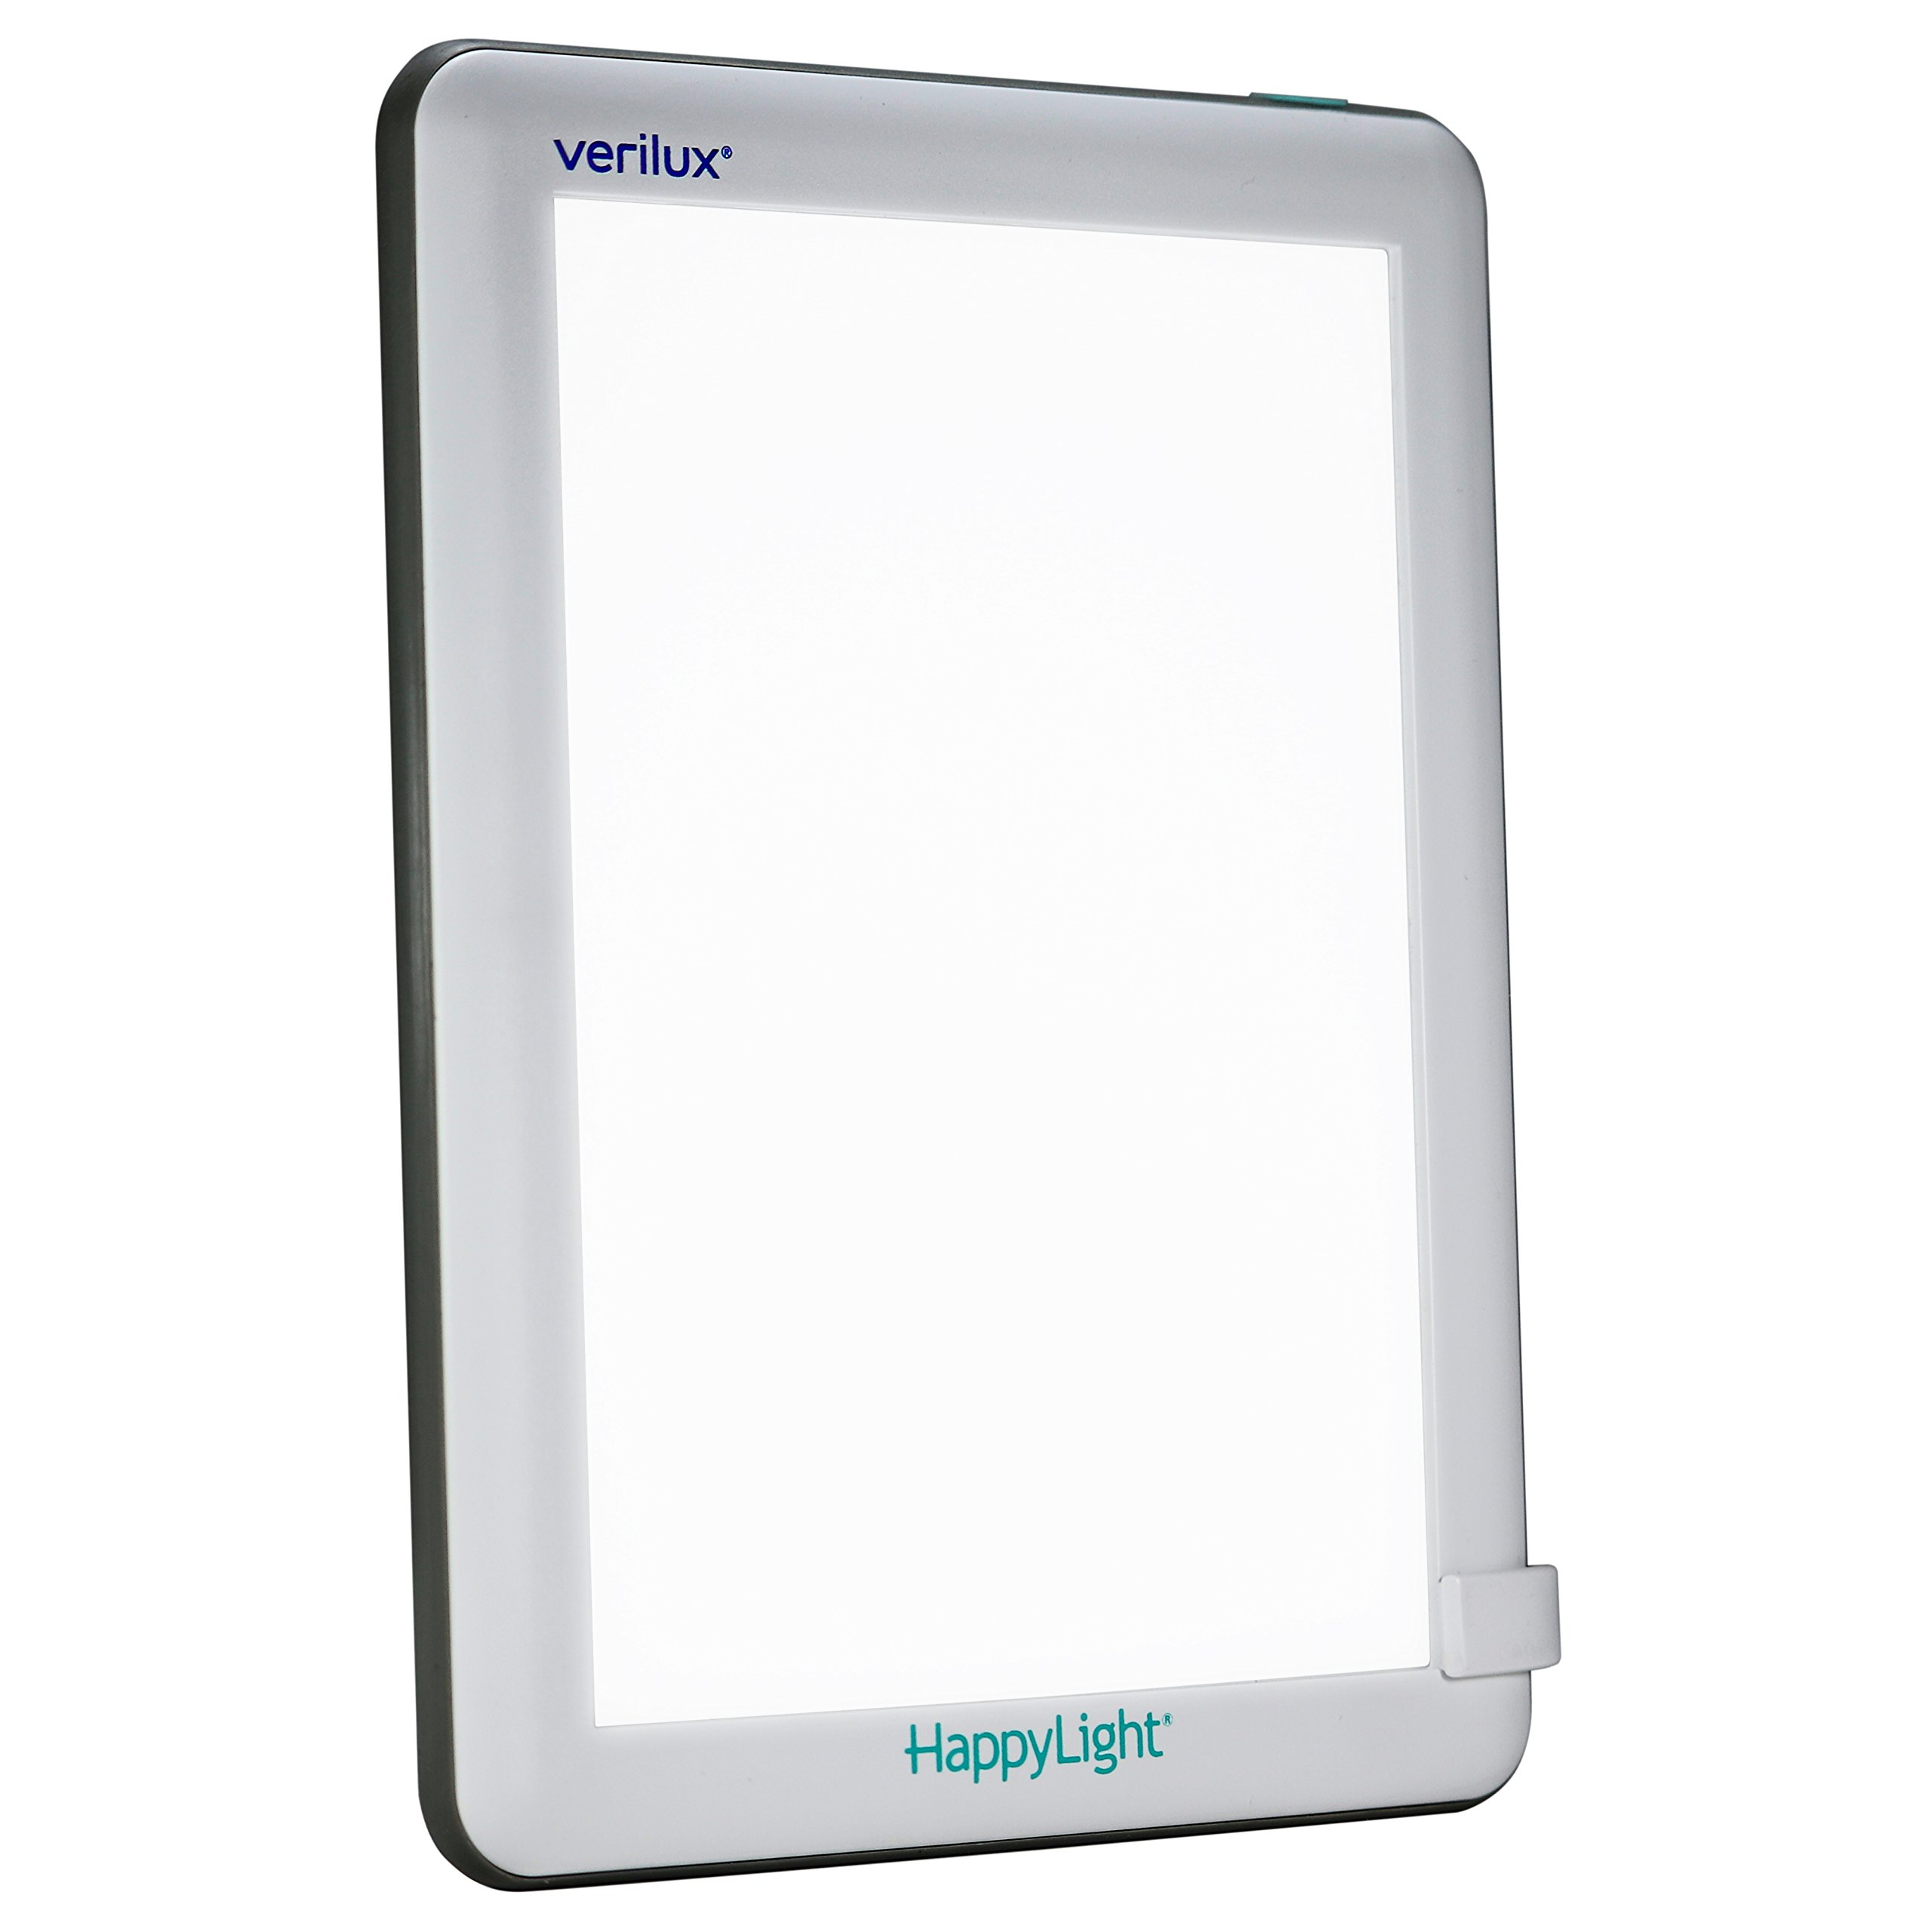 Verilux HappyLight Lucent 10000 Lux LED Bright White Light Therapy Lamp product image